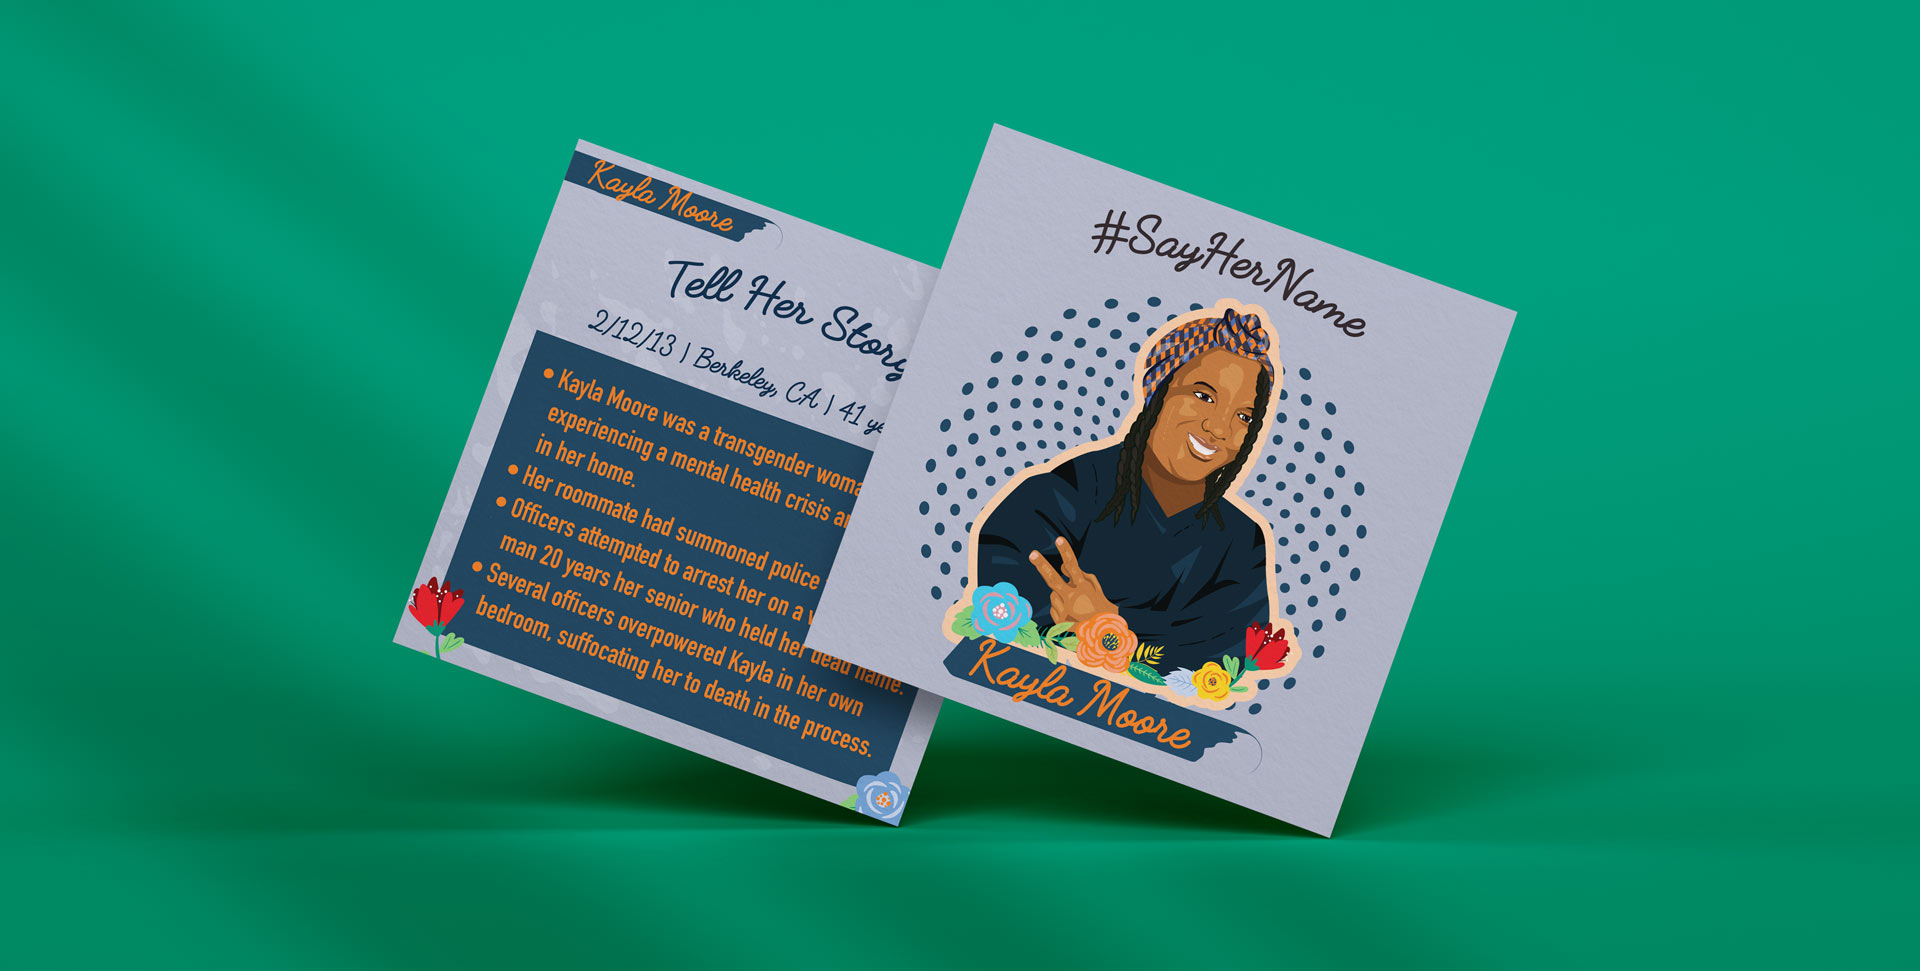 Kayla Moore mockup illustration with her portrait and on the back her story